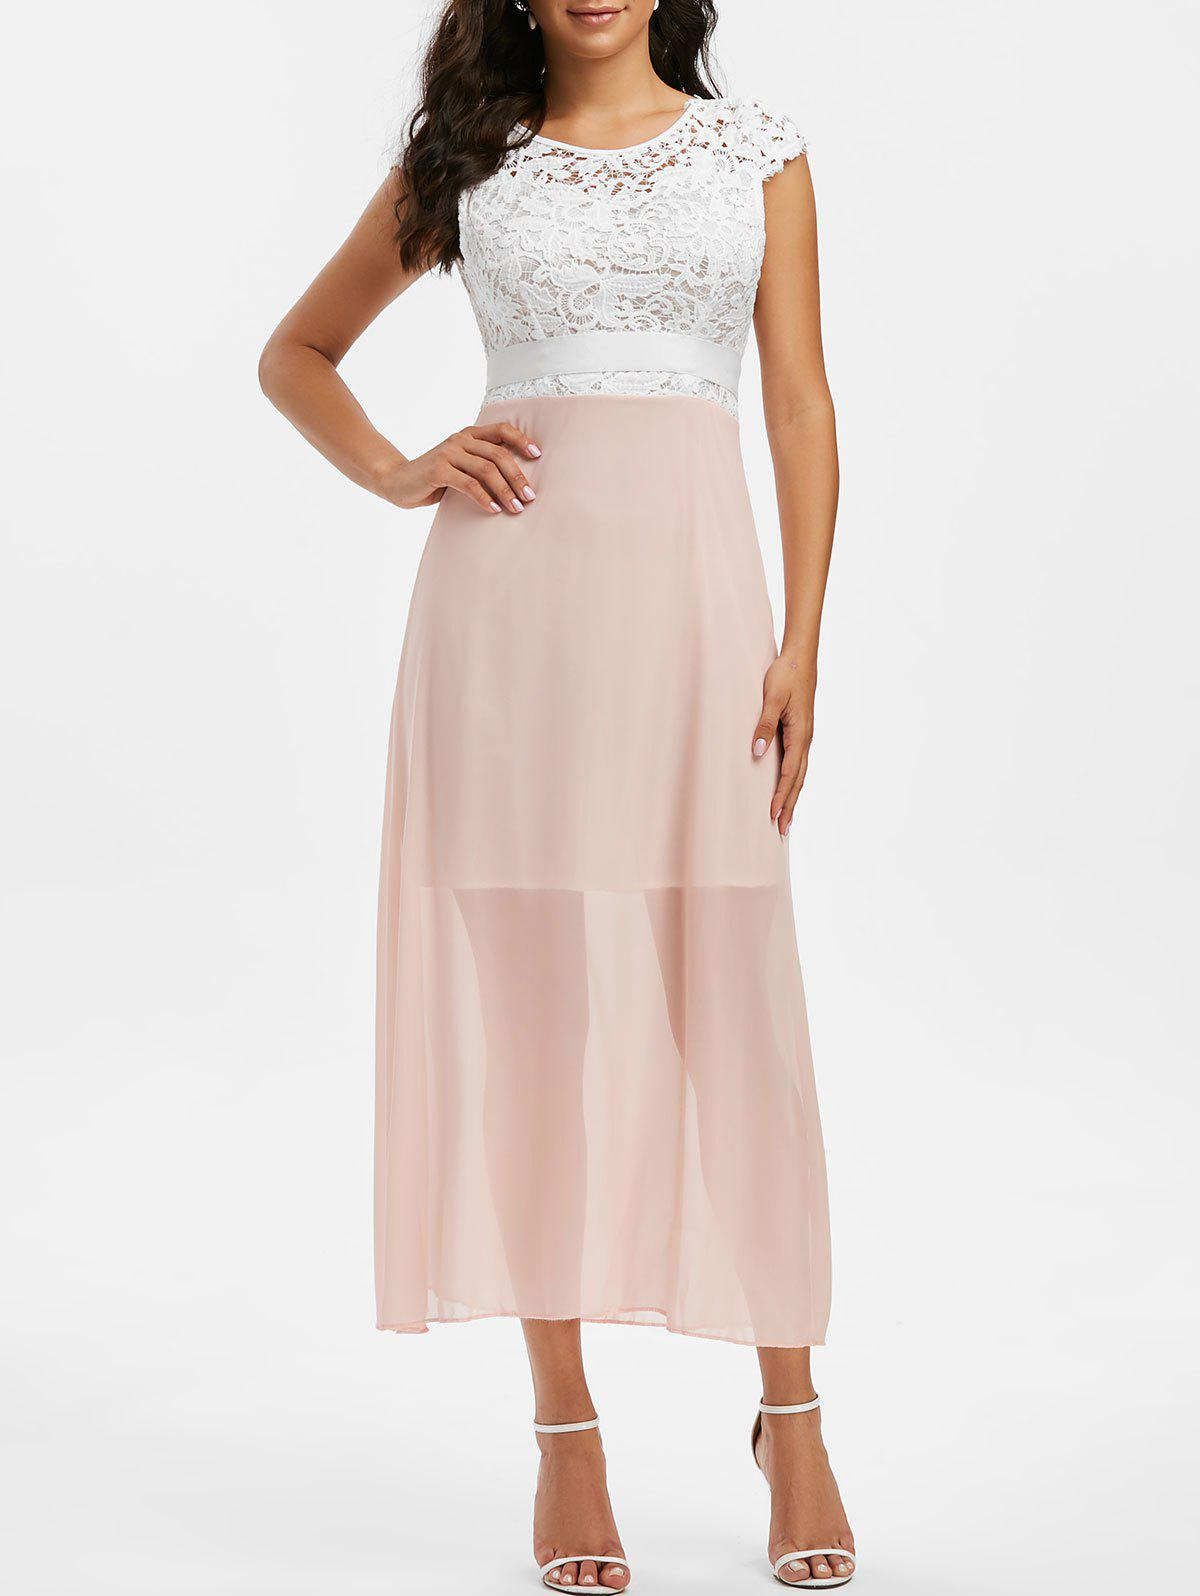 Lace Crochet Chiffon Open Back Prom Dress - LIGHT PINK XL